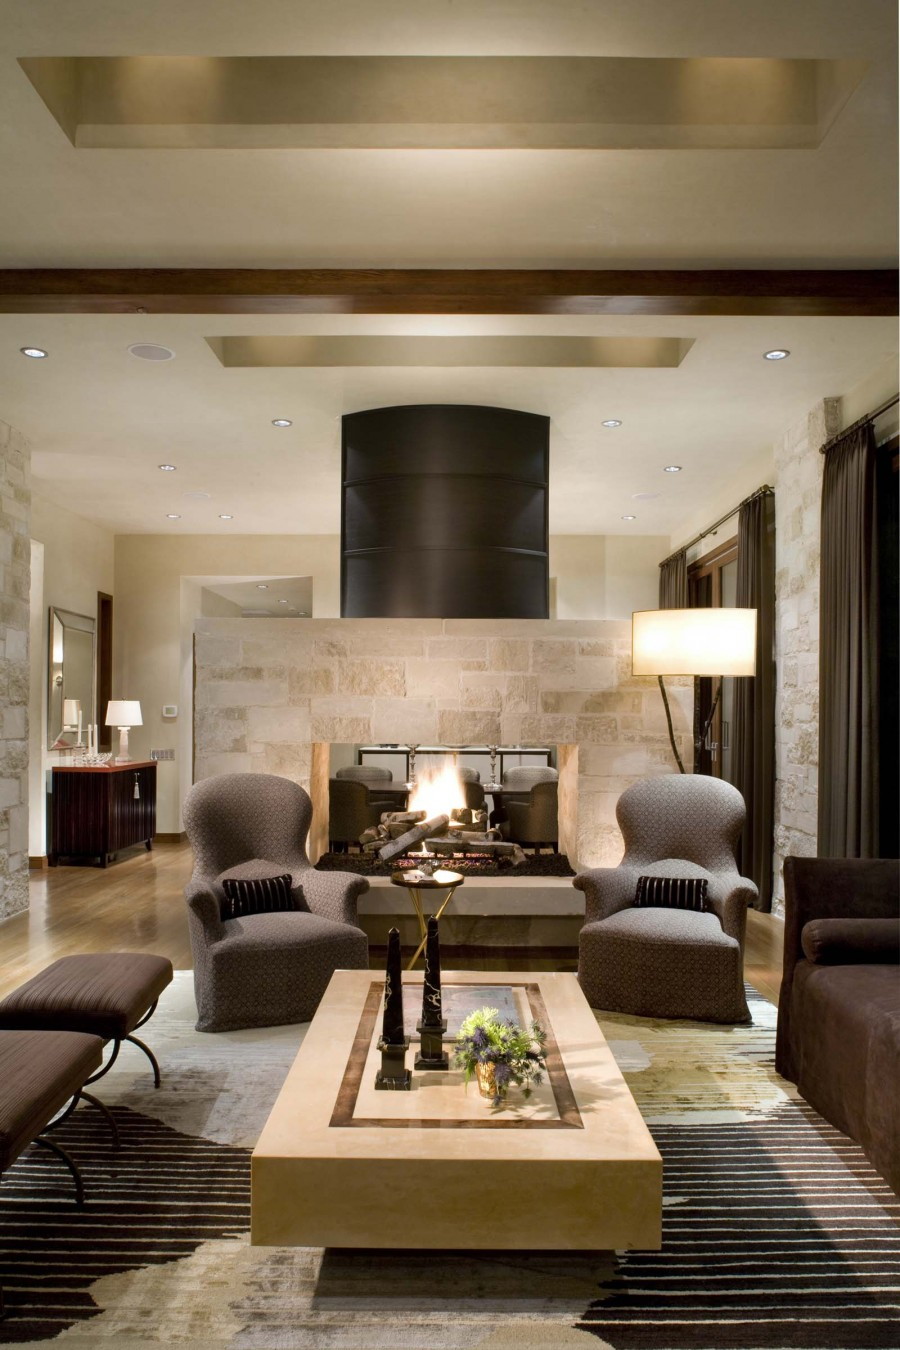 16 fabulous earth tones living room designs decoholic for Home living room design ideas